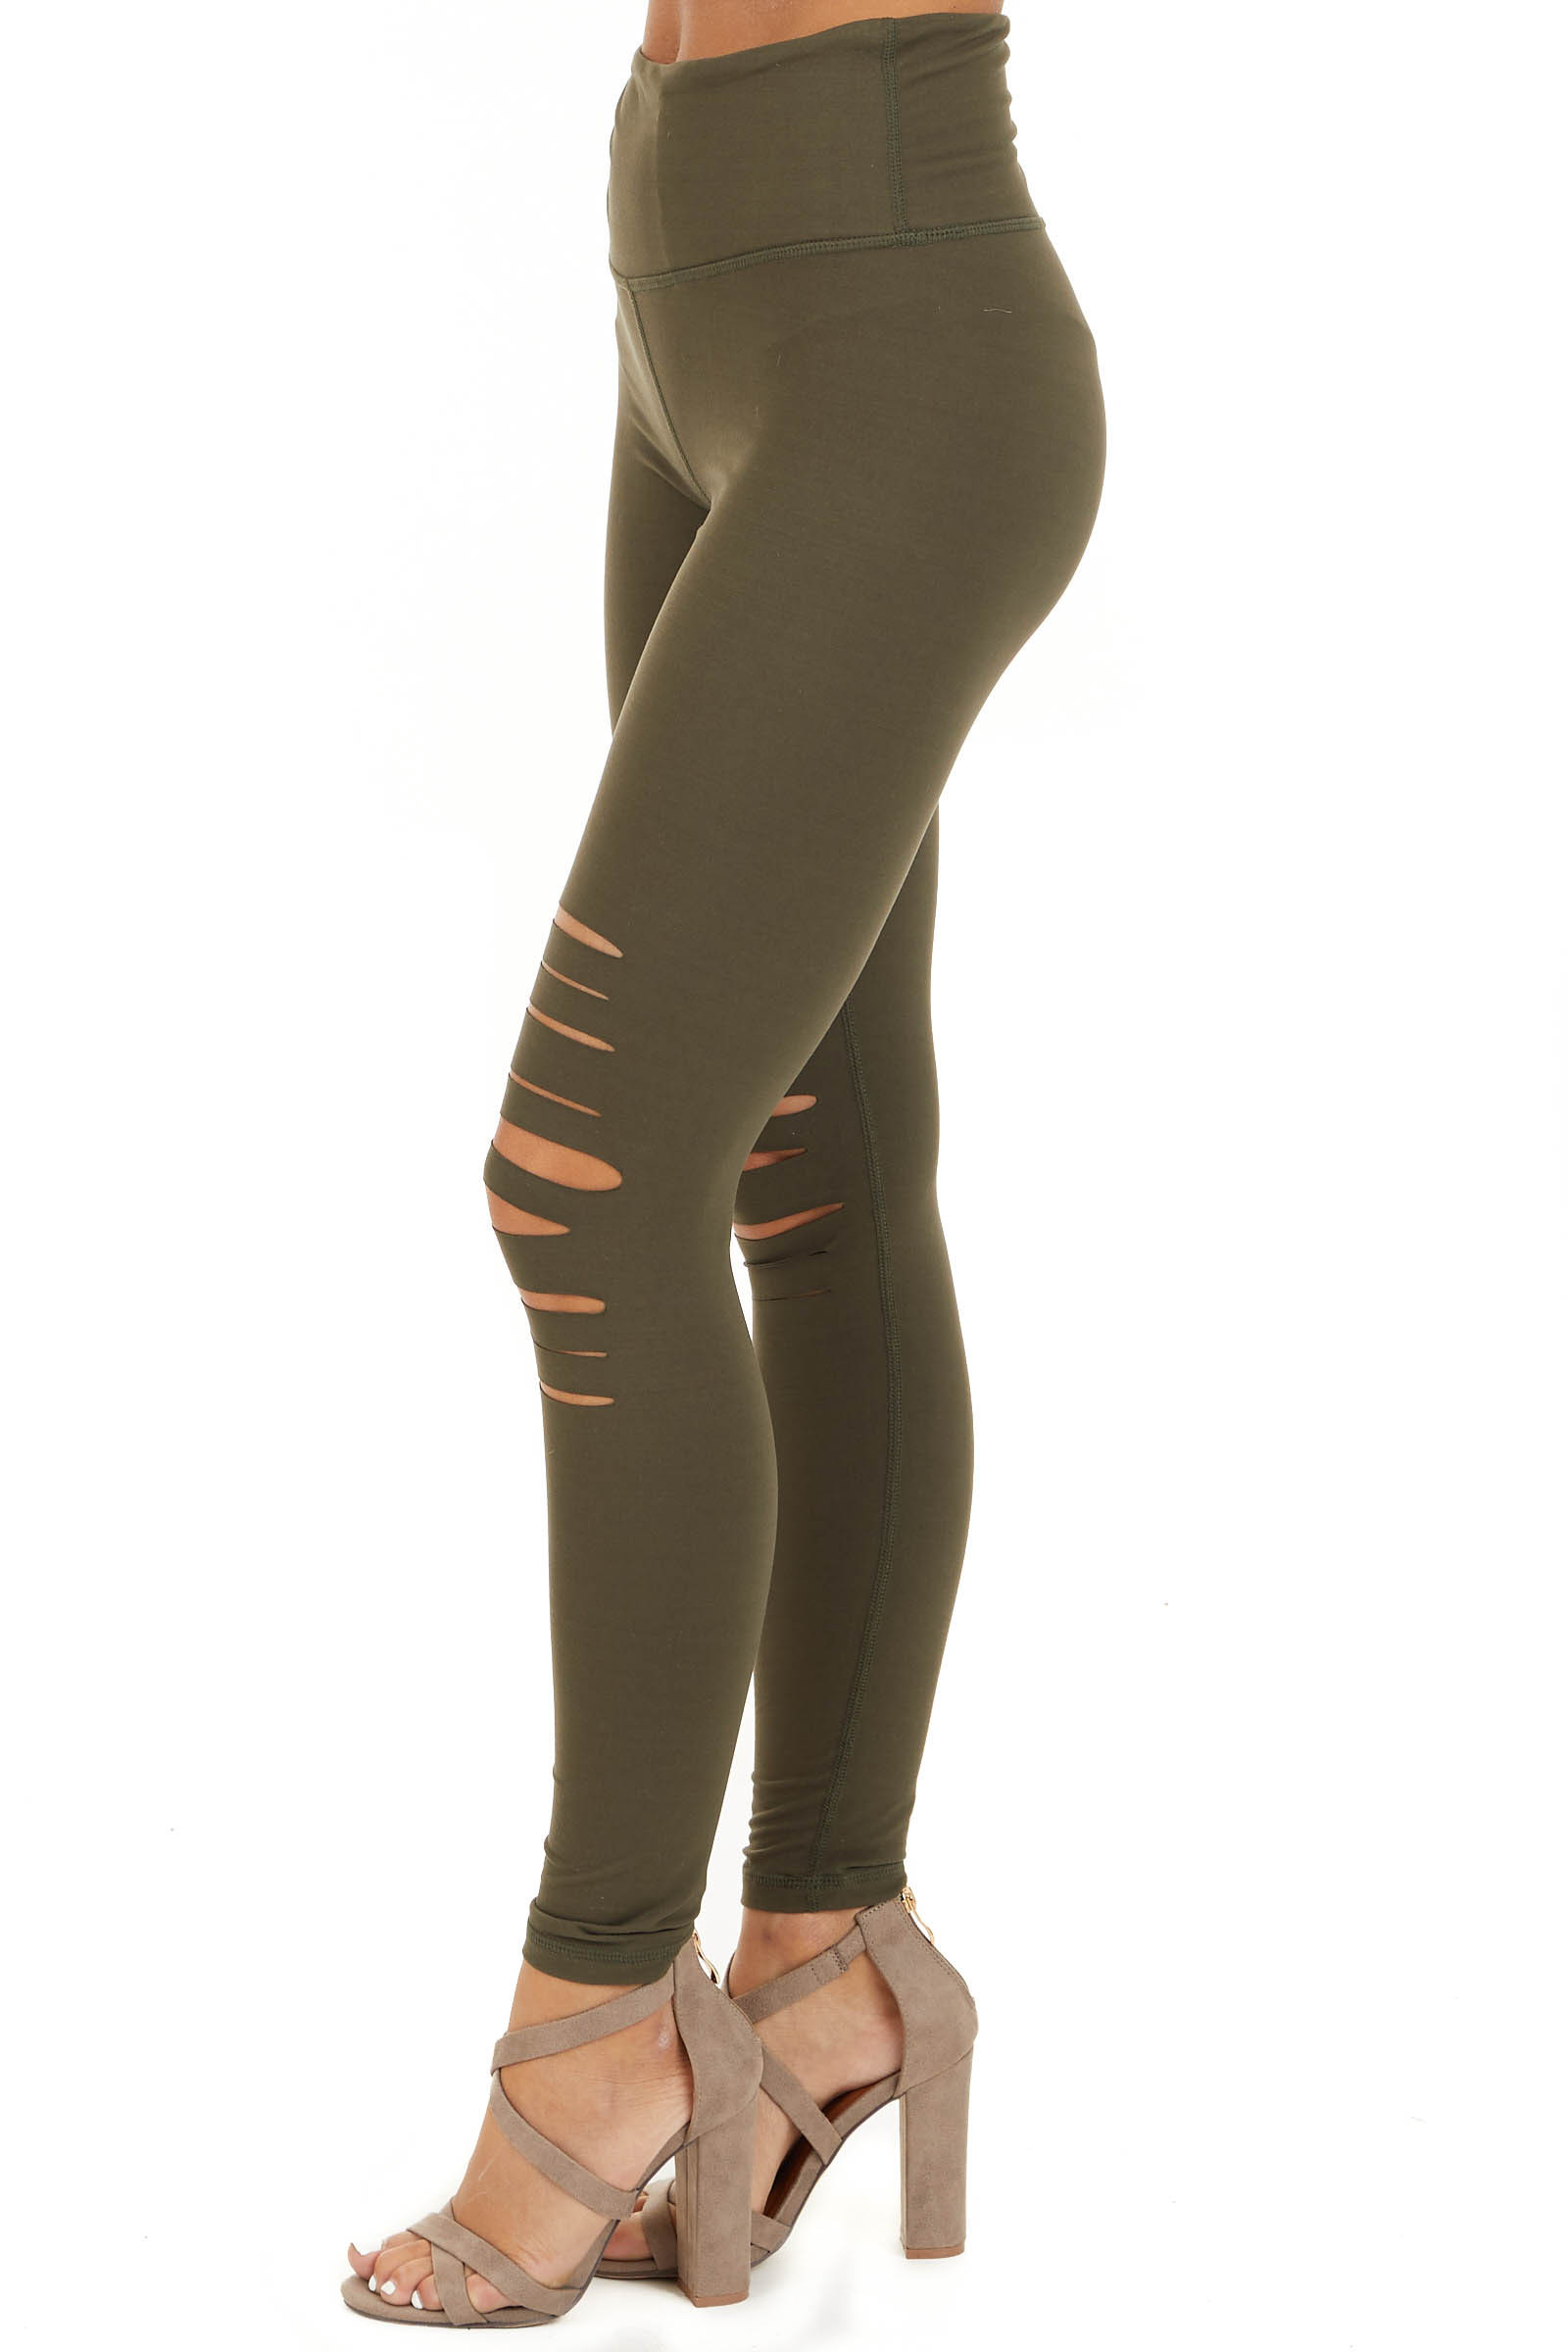 Olive Solid Leggings with Laser Cutout Details side view